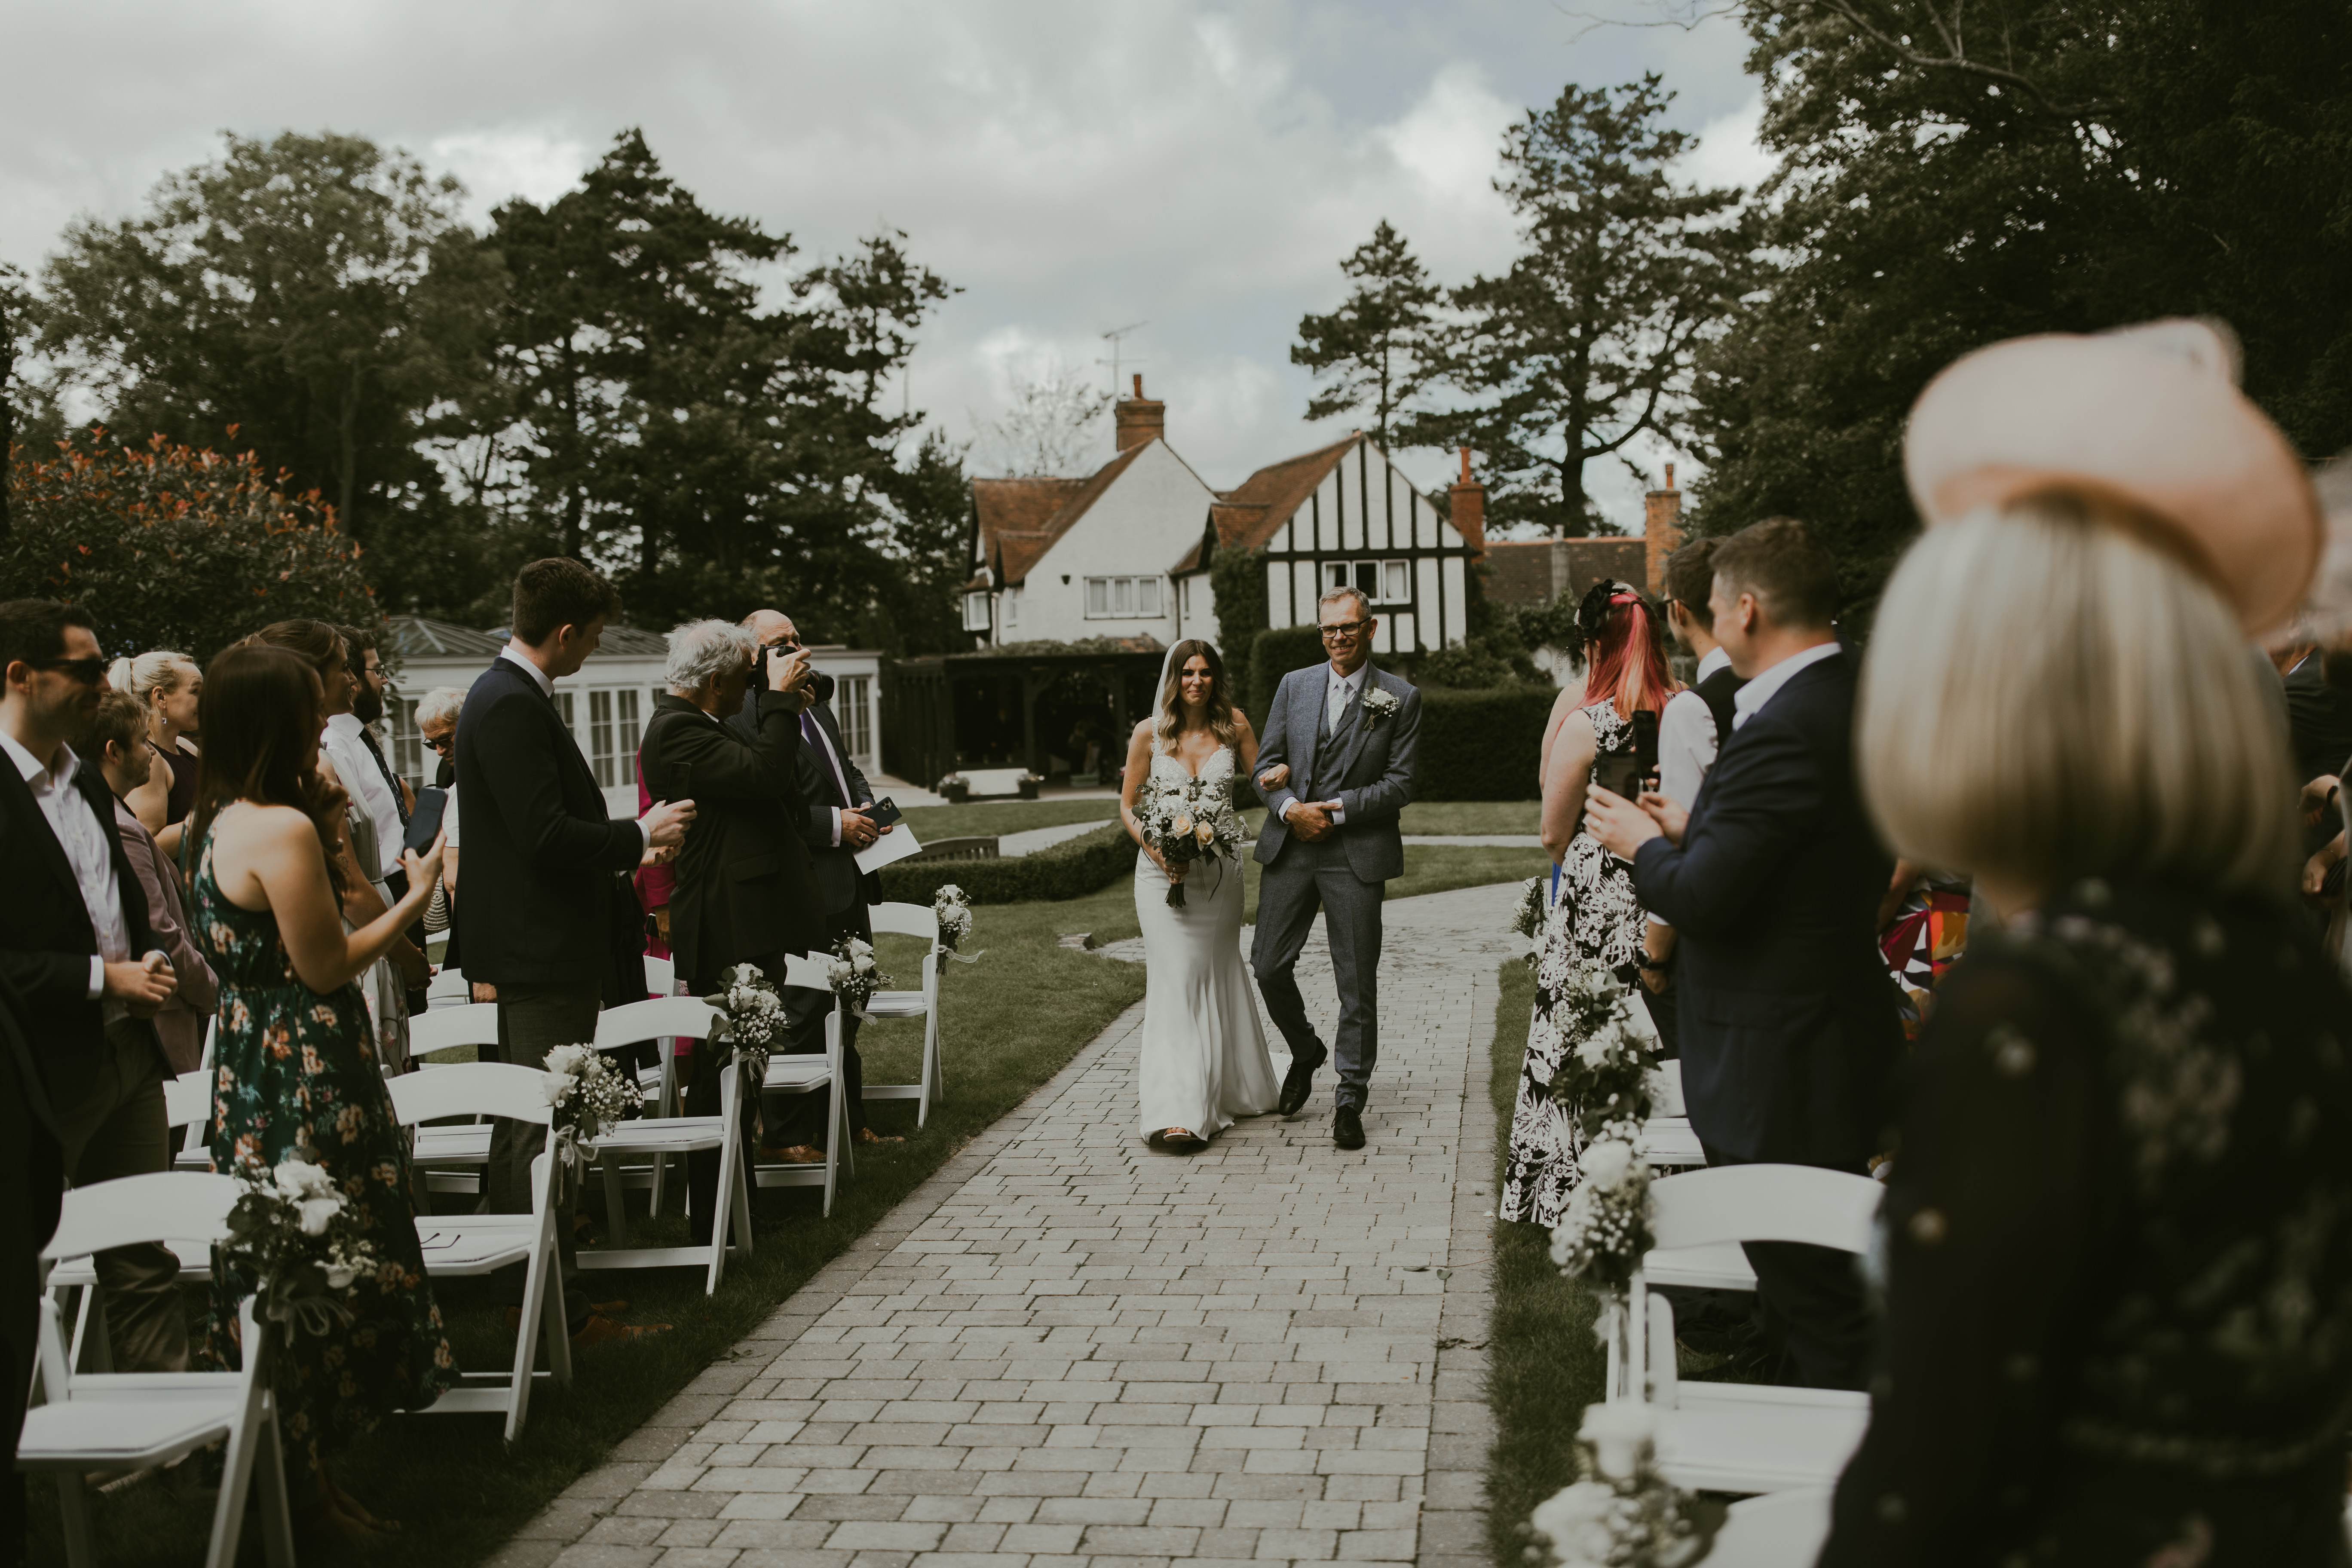 Bride being walked down paved aisle at Hayne House